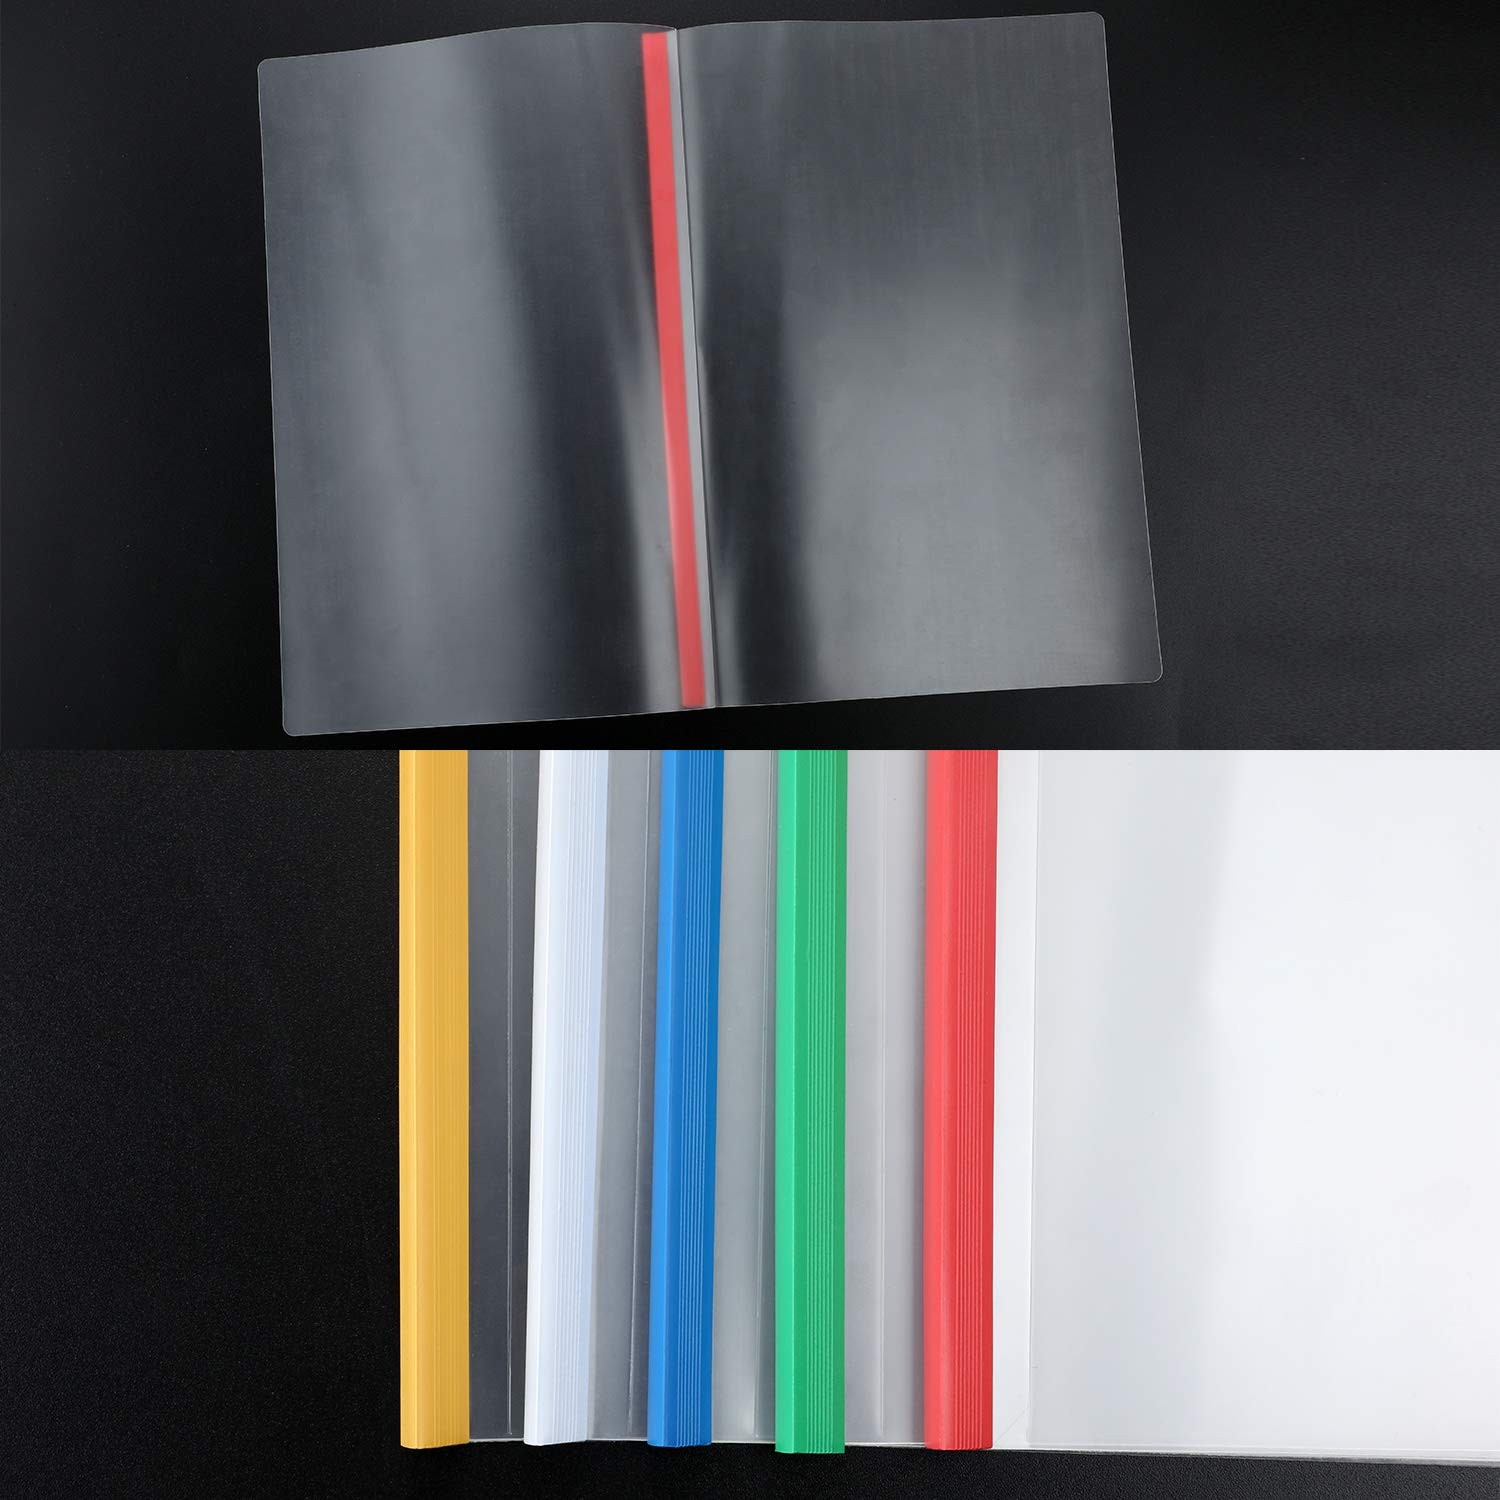 10 Pieces Binding Bars Slide Grip Binding Bars Report Cover A4 Spine Bars for School and Office 12 Inch 5 Colors 40 Sheet Capacity